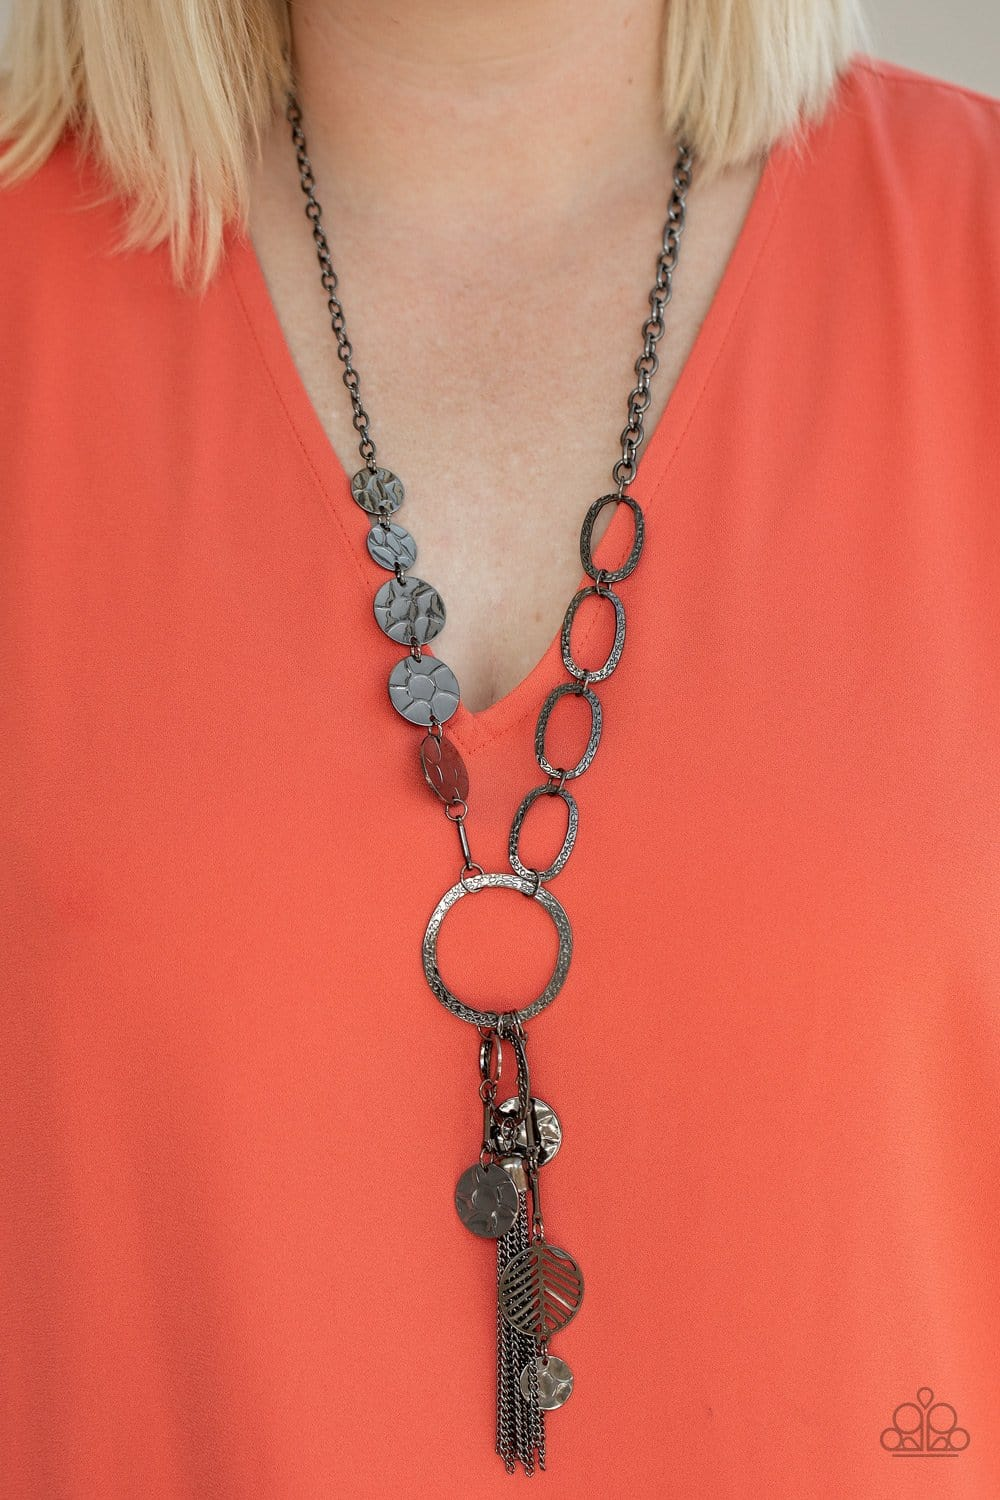 Paparazzi: Trinket Trend - Gunmetal Chain Tassel Necklace - Jewels N' Thingz Boutique